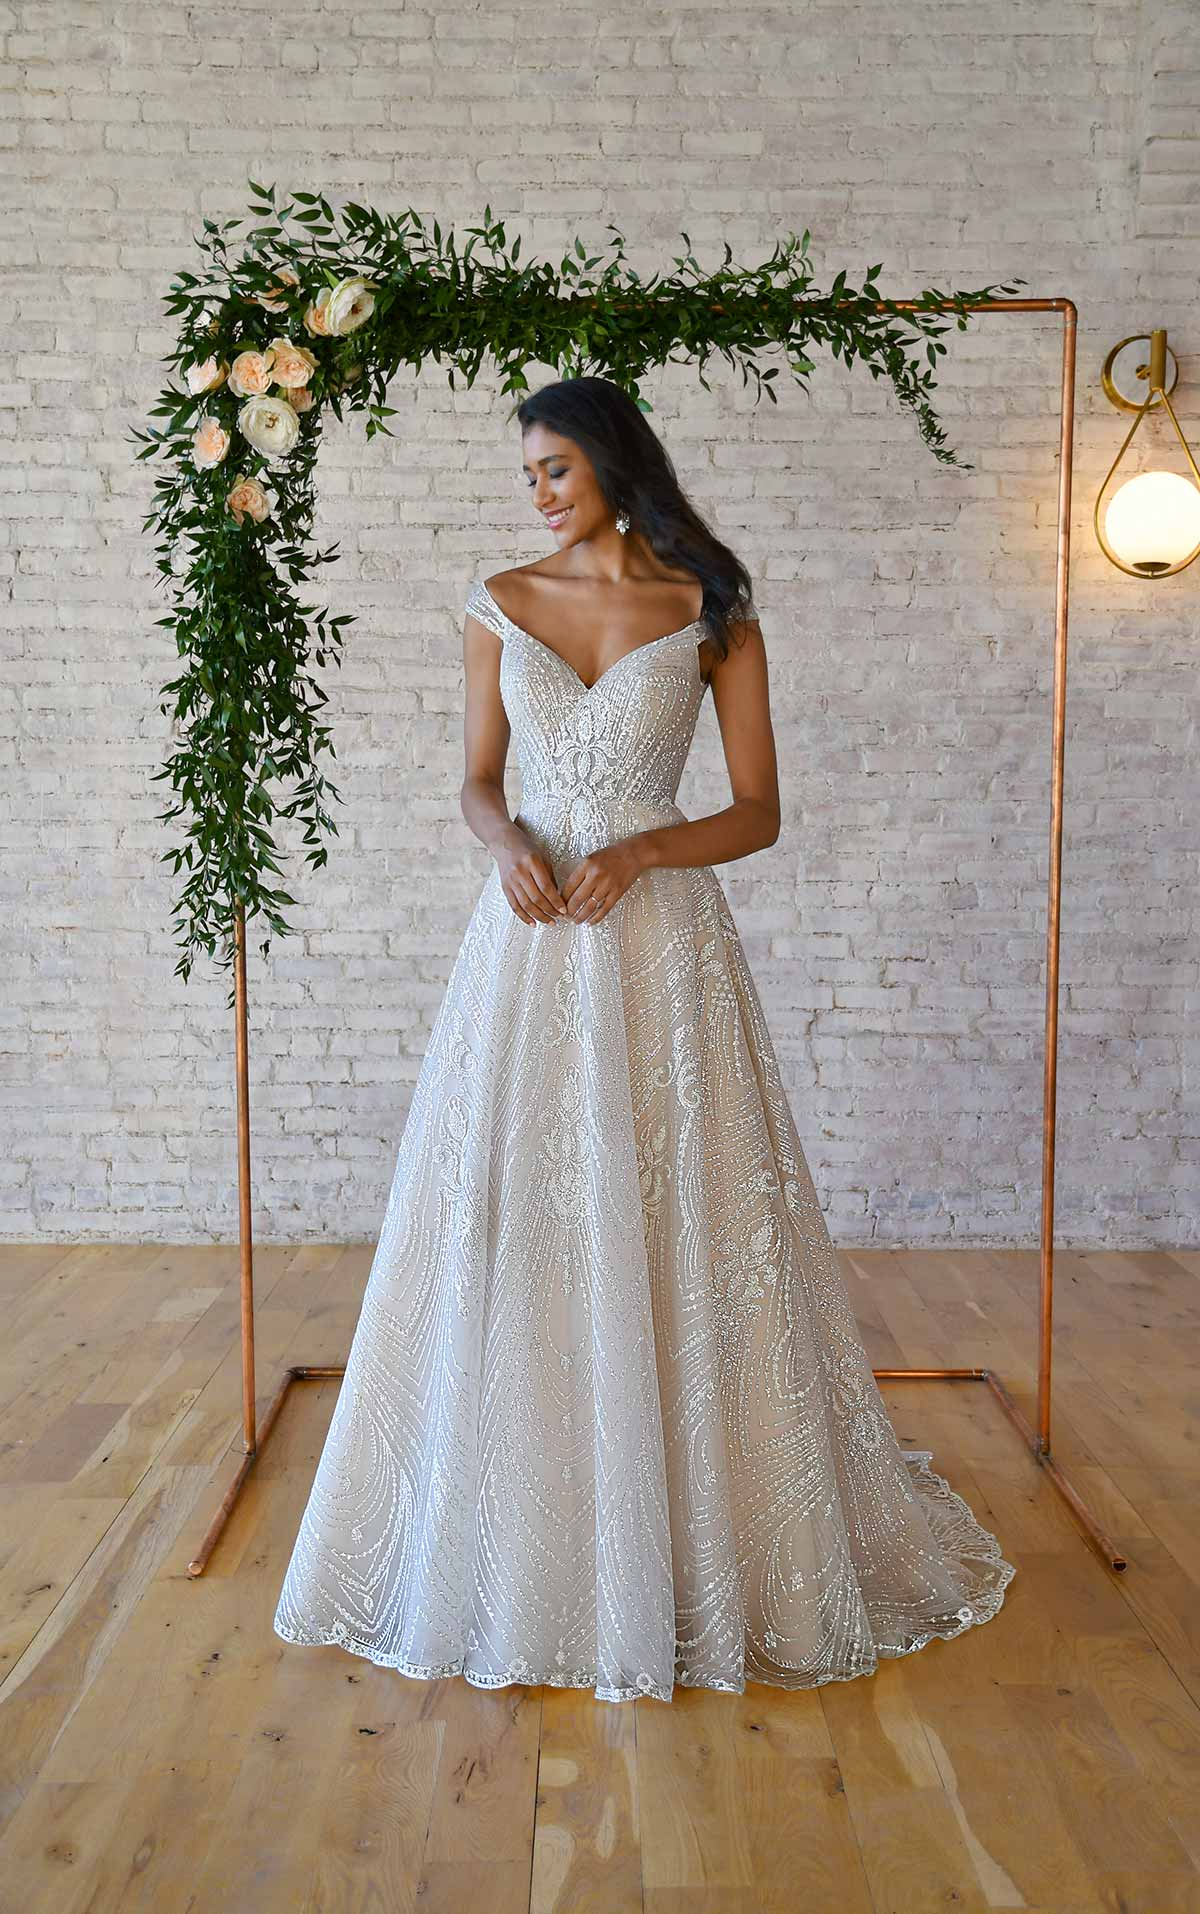 7336 Sparkling A-Line Wedding Dress with Off-the-Shoulder Strap by Stella York